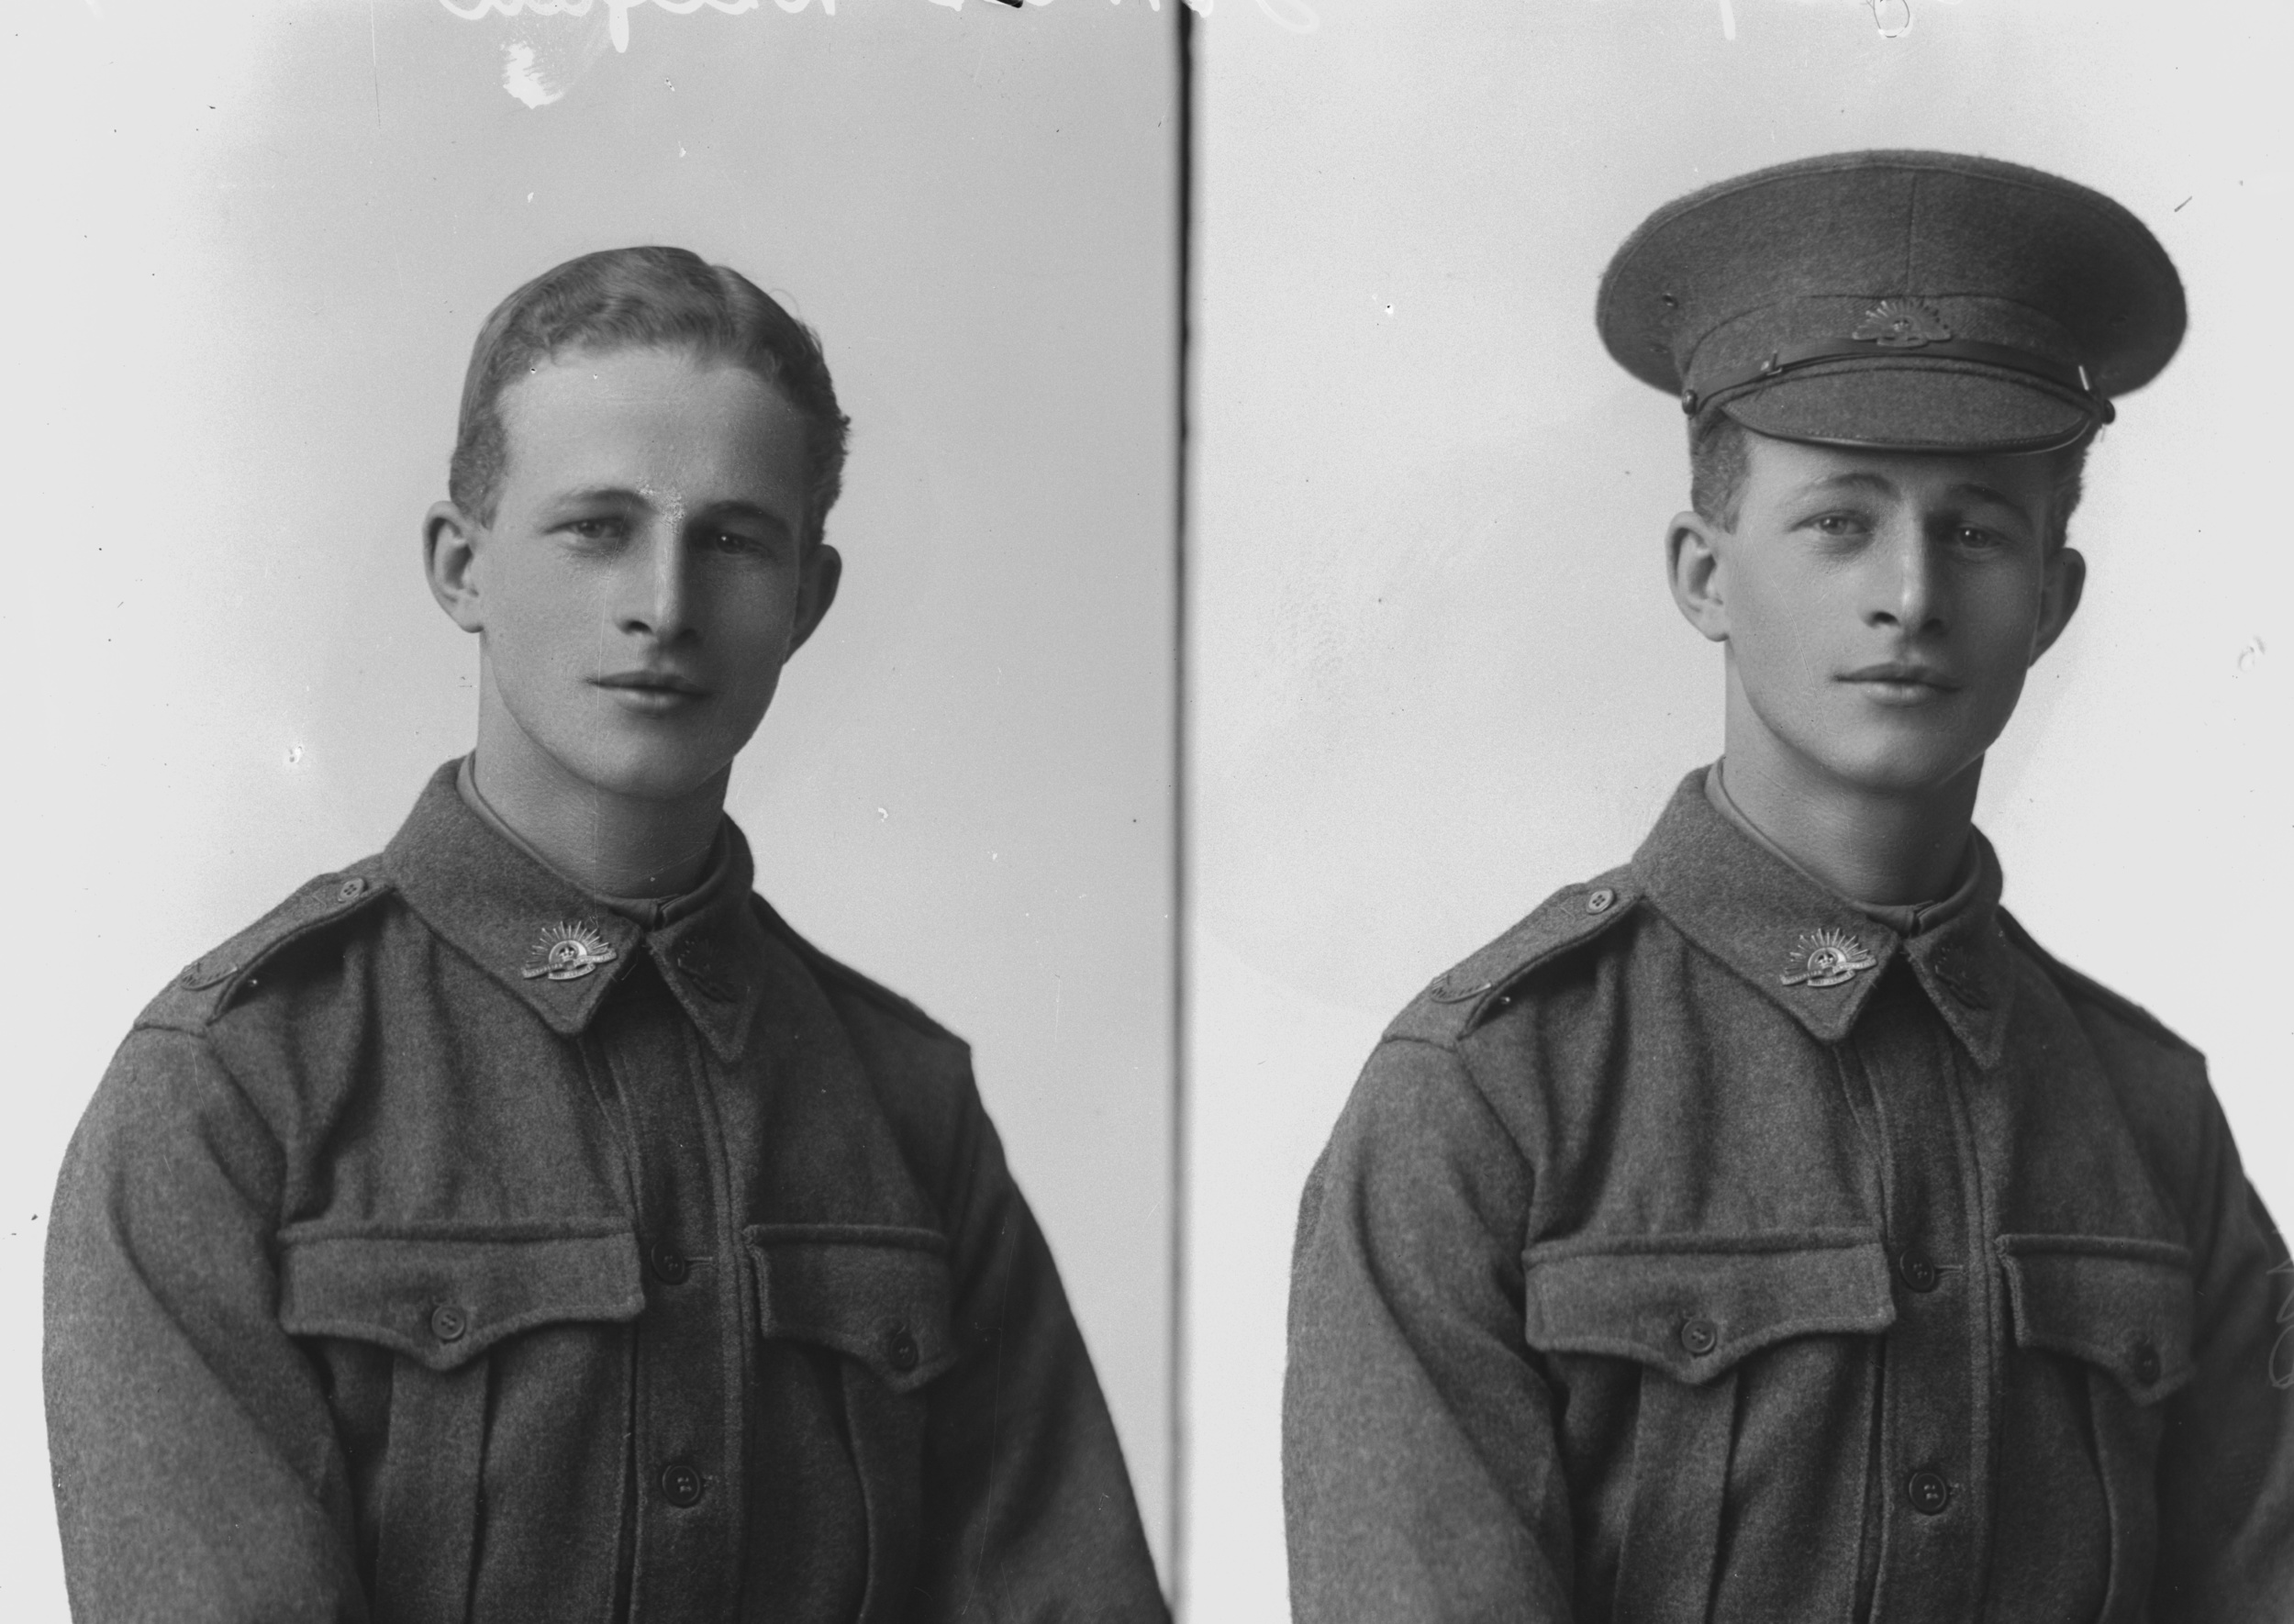 Photographed at the Dease Studio, 117 Barrack Street Perth WA Image courtesy of the State Library of Western Australia: 108059PD